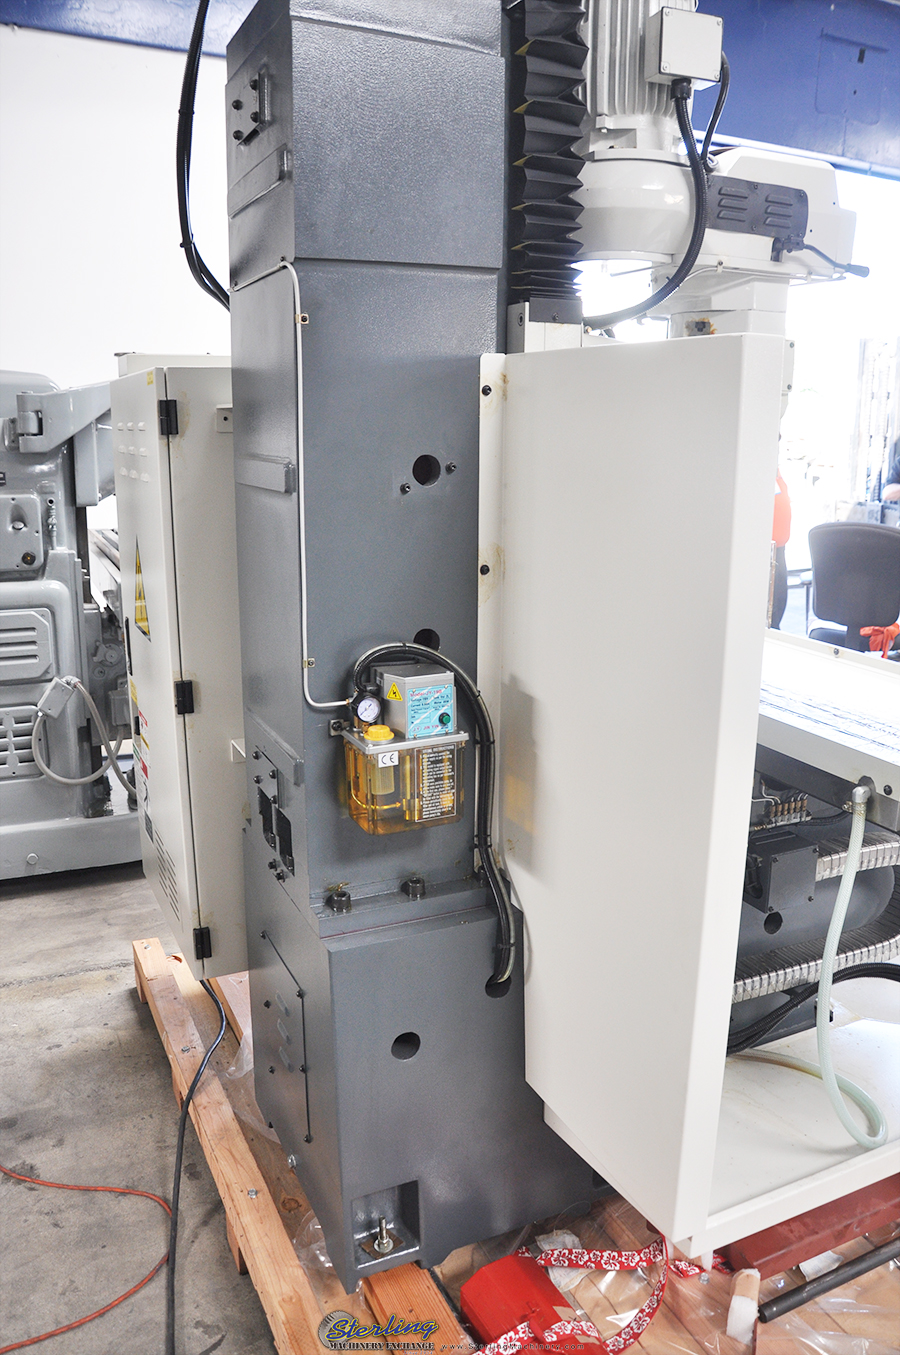 Brand New Atrump Cnc Bed Milling Machine With 3 Axis Cnc